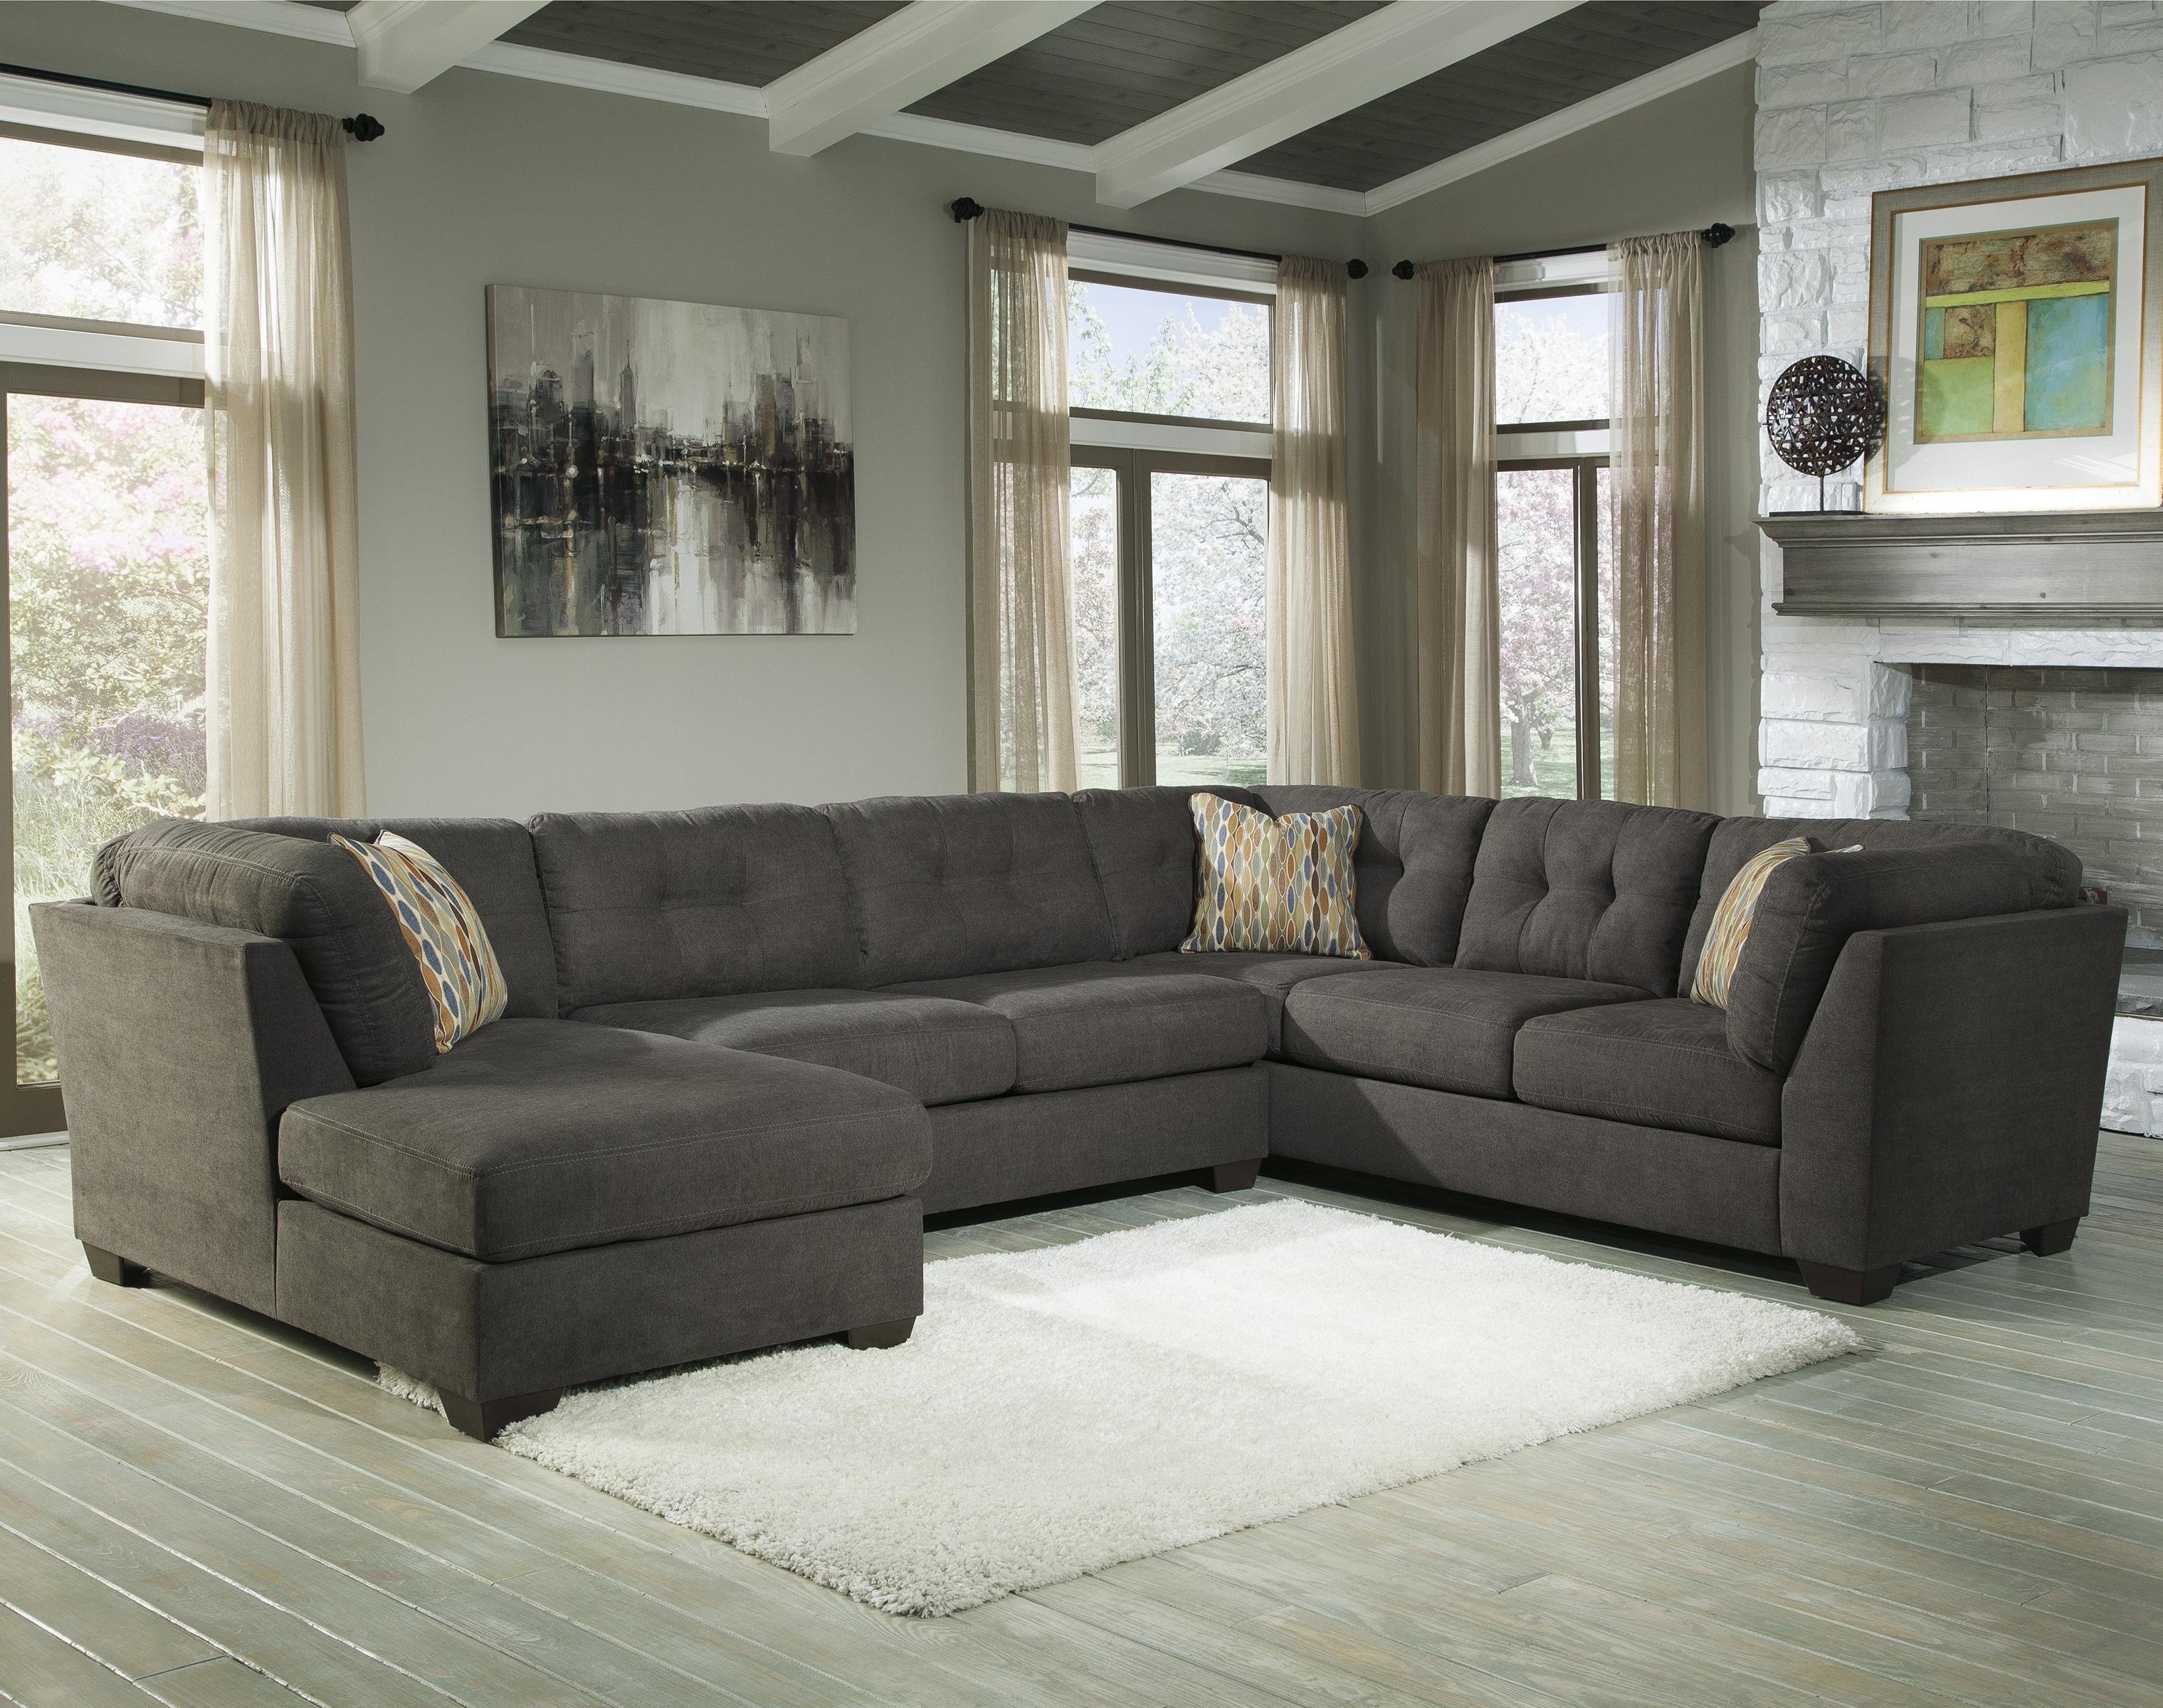 ash benchcraft enlarge chaise furniture polyester classy sectional product danely click ashley home dusk to sofa the